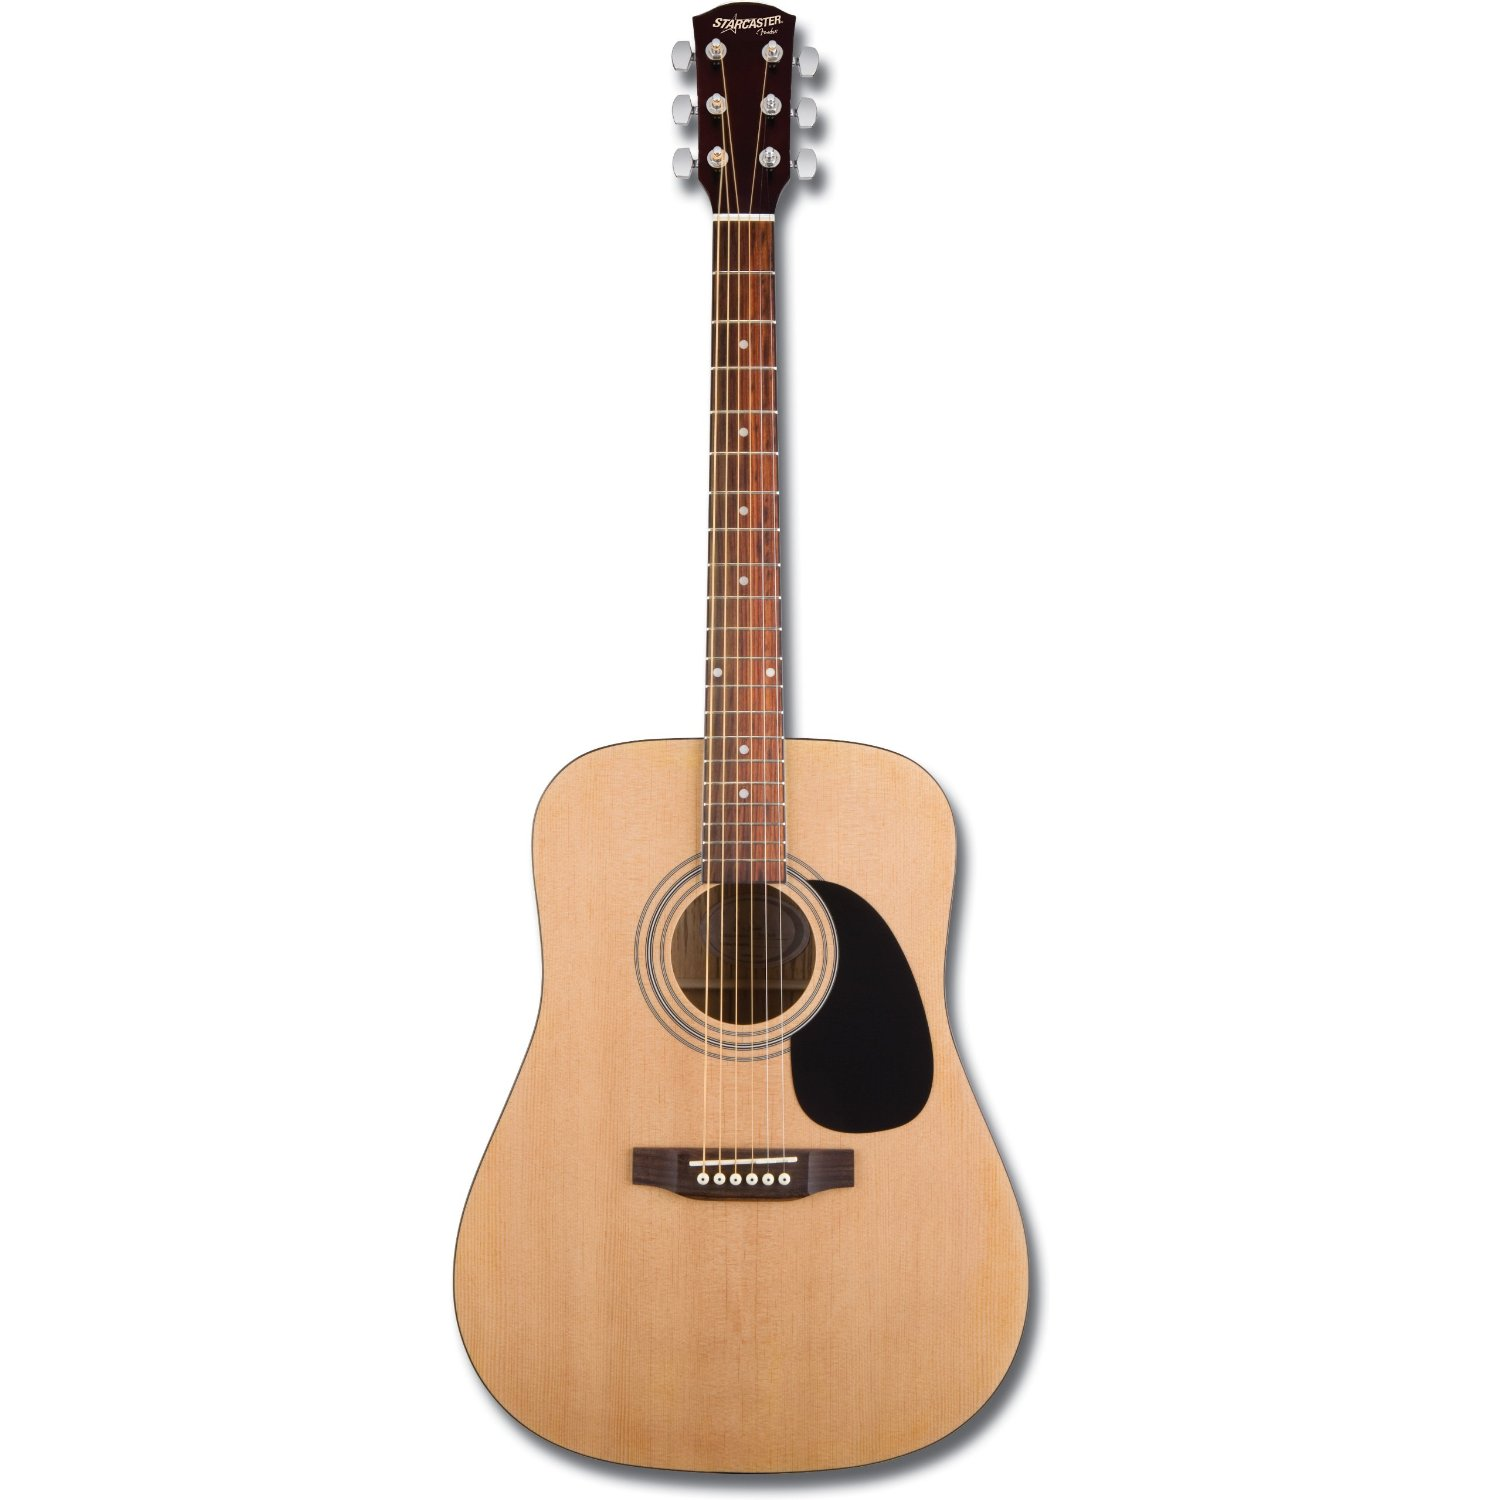 Acoustic Guitar Review: Epiphone DR-100 vs Fender Starcaster Acoustic ...